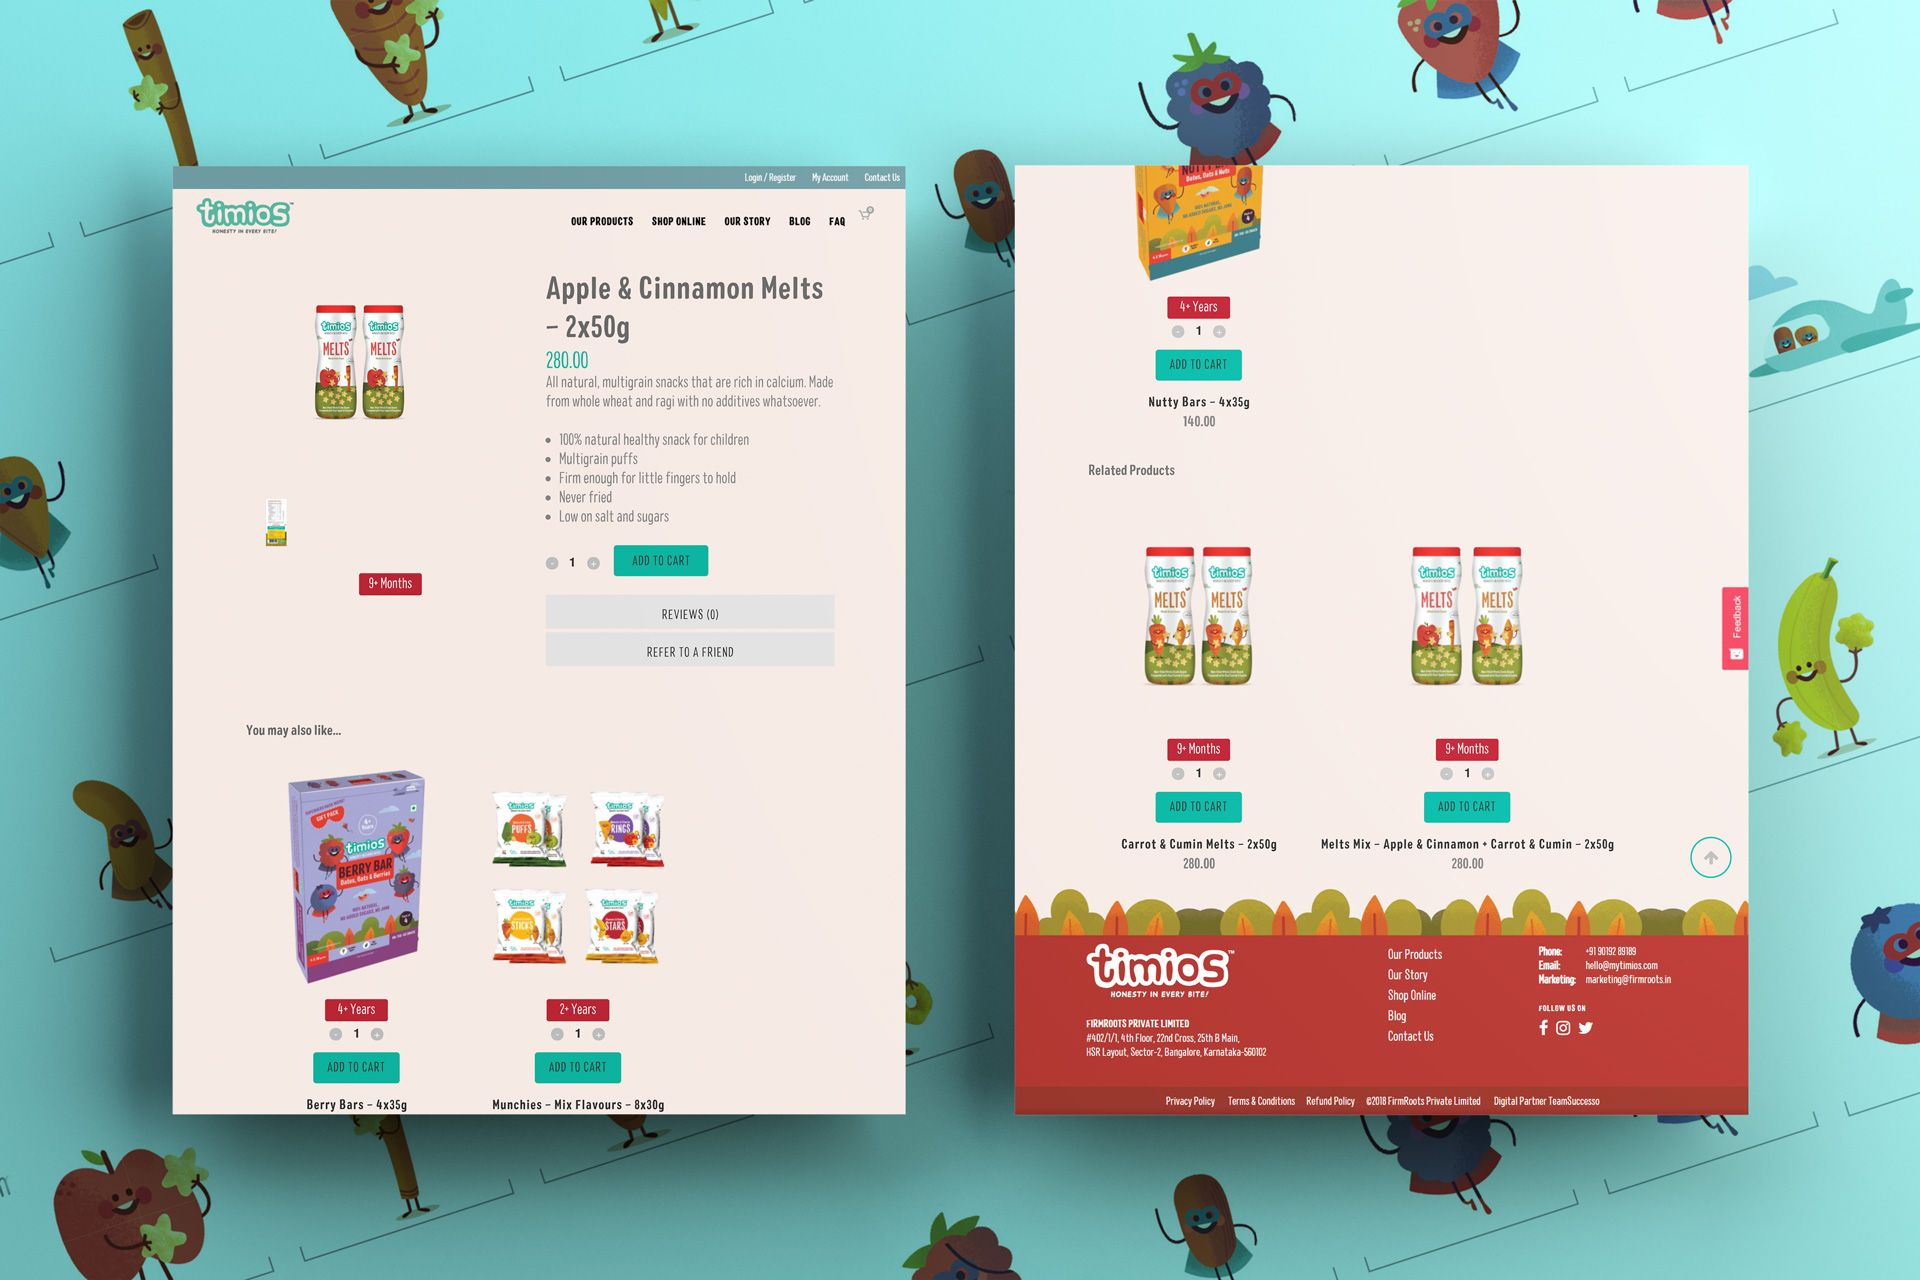 timios Website Screens Mockup – Salman-Ravoof – Product page